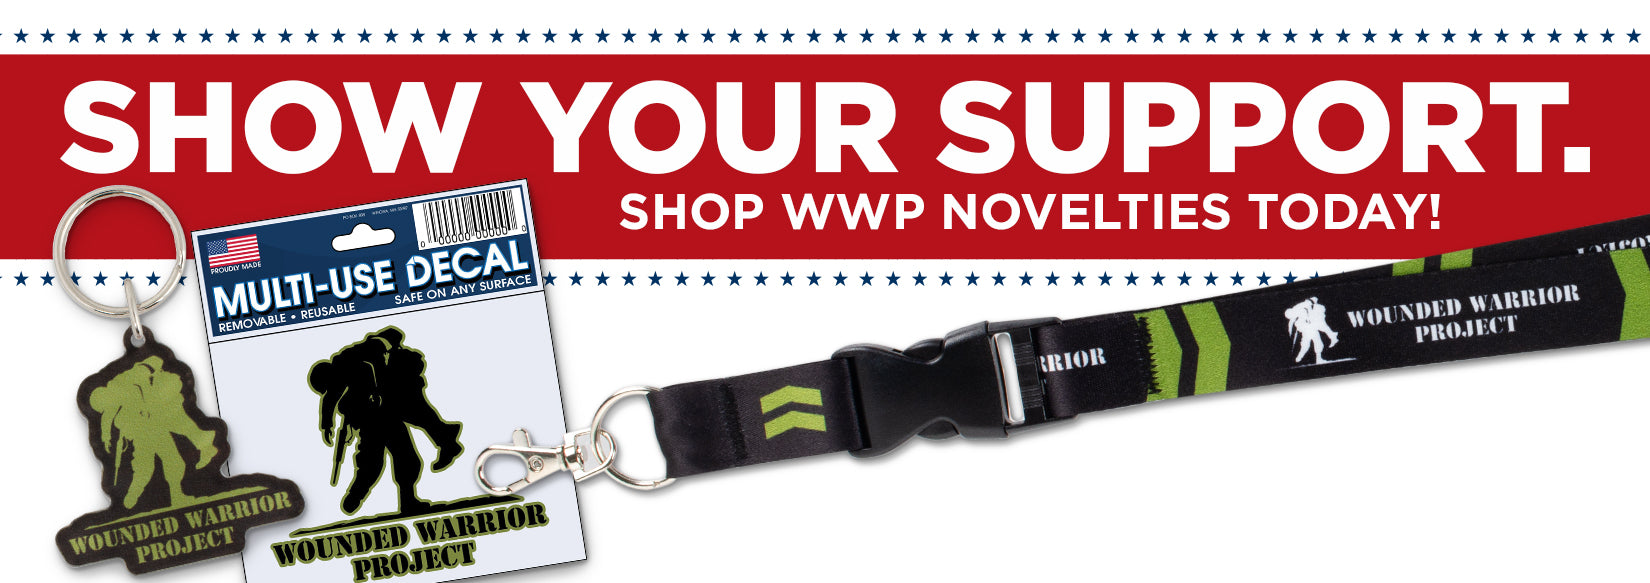 Show your support. Shop WWP novelties today.